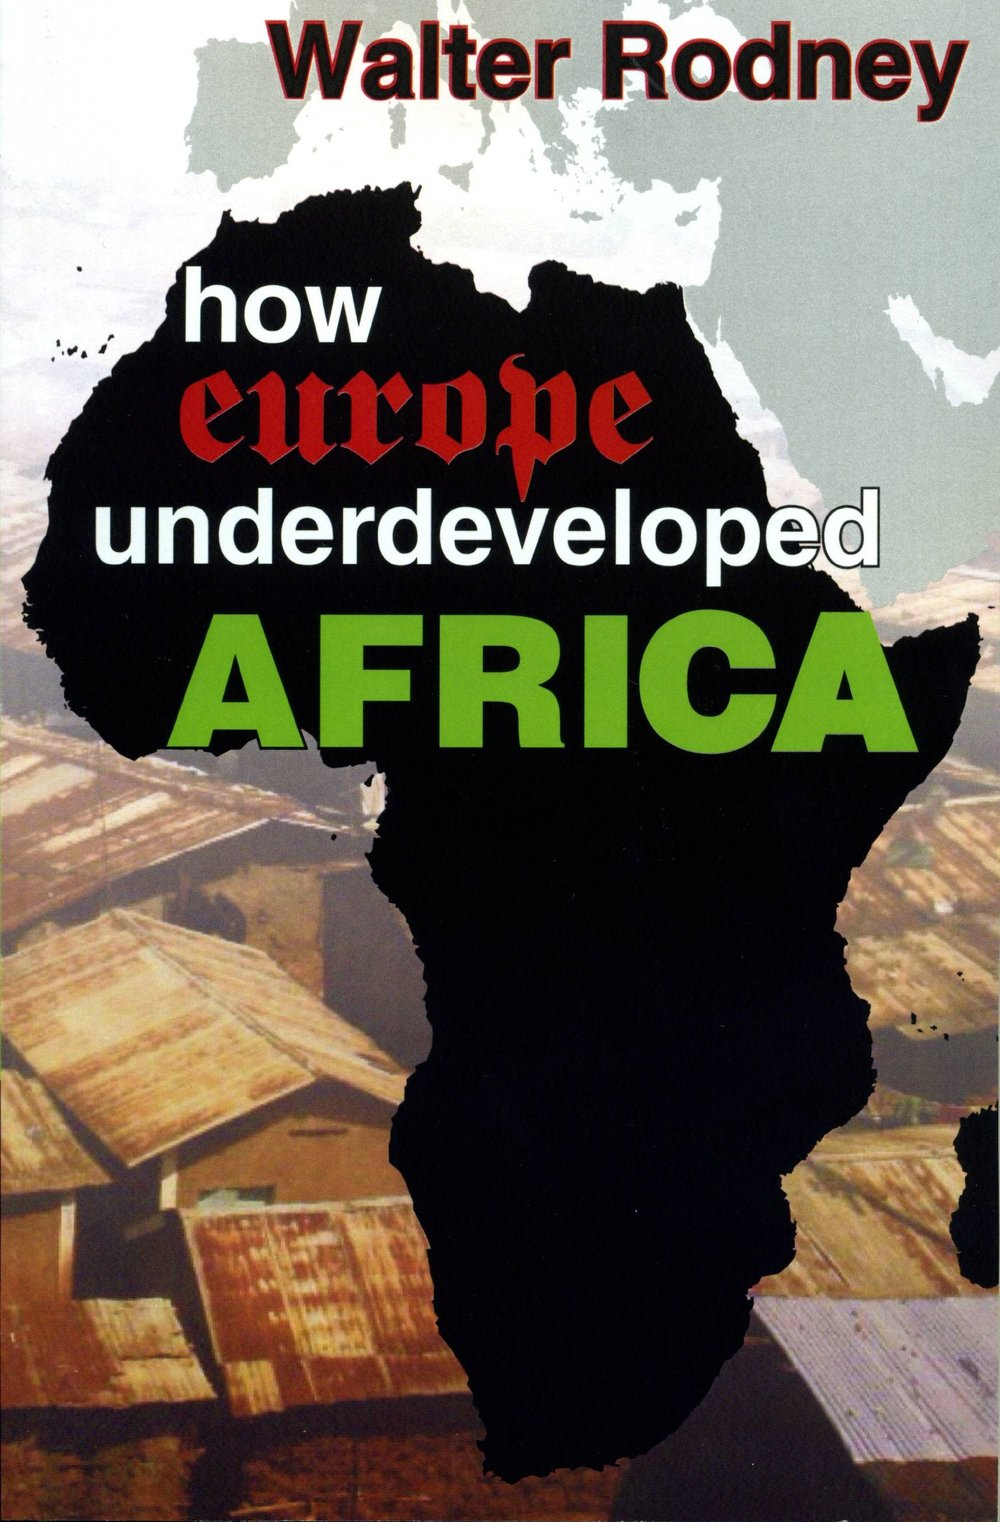 """That book"": Seminal study of neocolonialism as active, ongoing underdevelopment - a process"